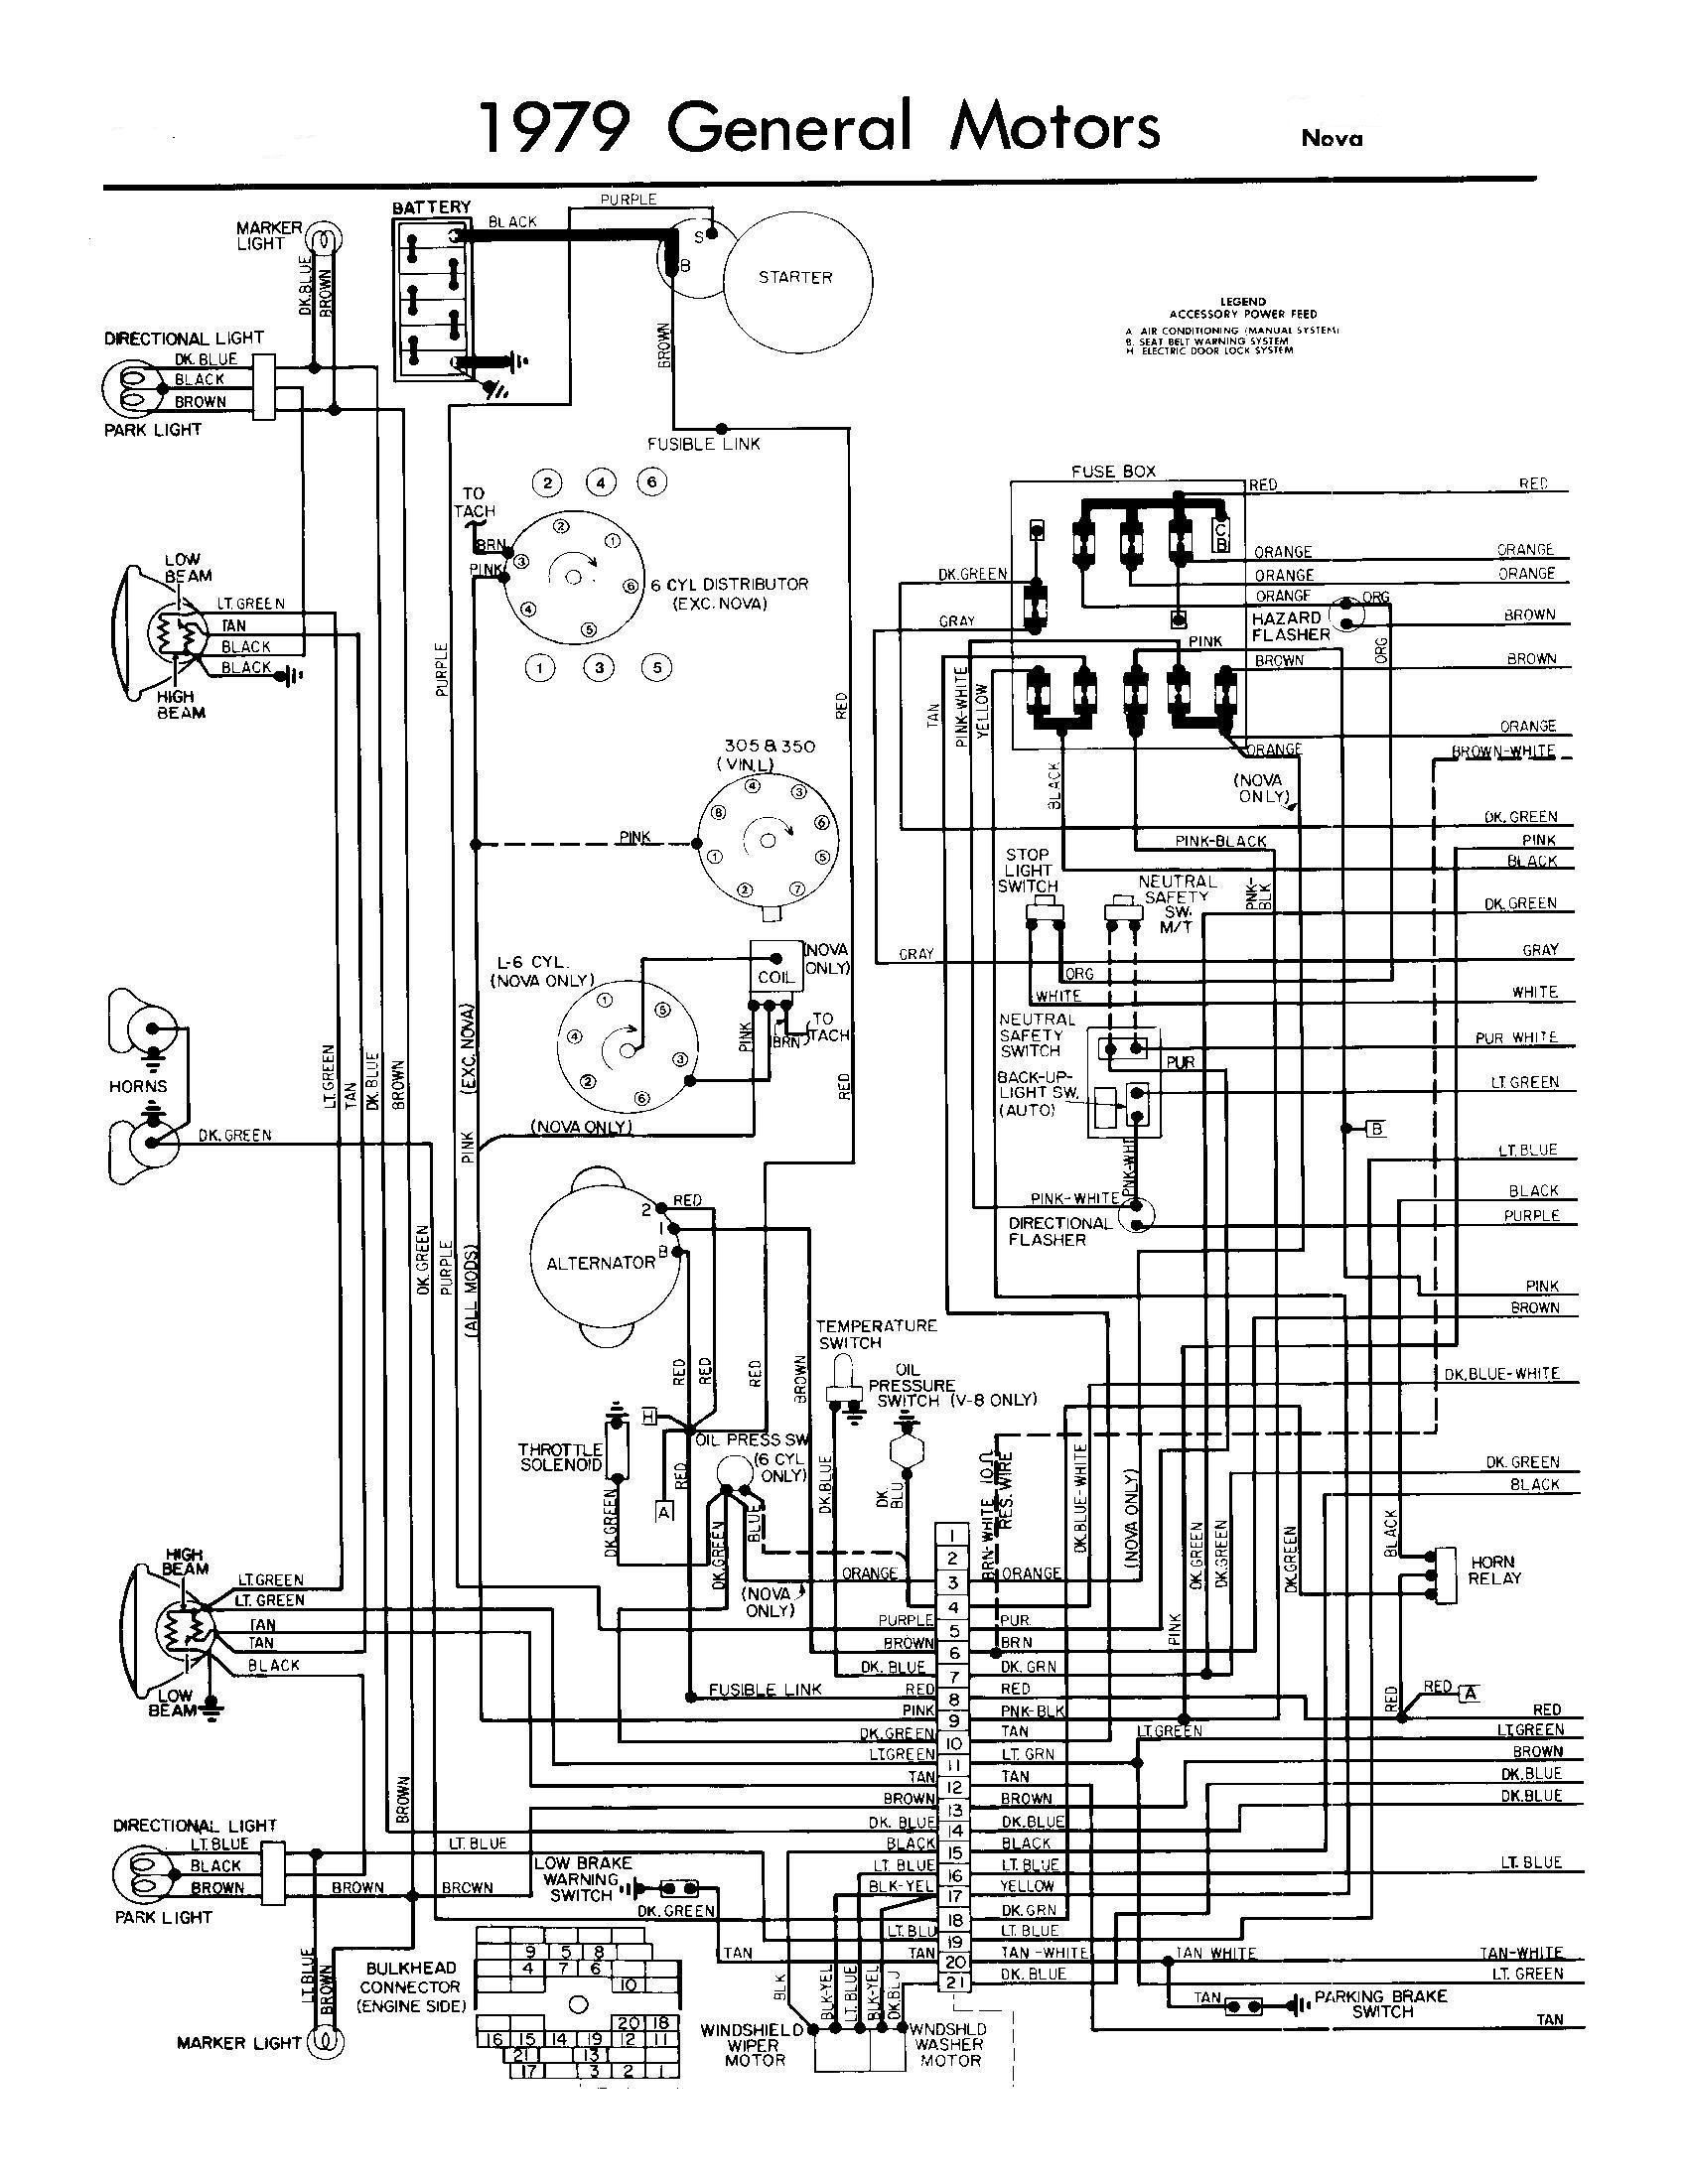 all generation wiring schematics chevy nova forum custom 79 gmc rh pinterest com 1979 gmc truck wiring diagram 1979 gmc truck wiring diagram